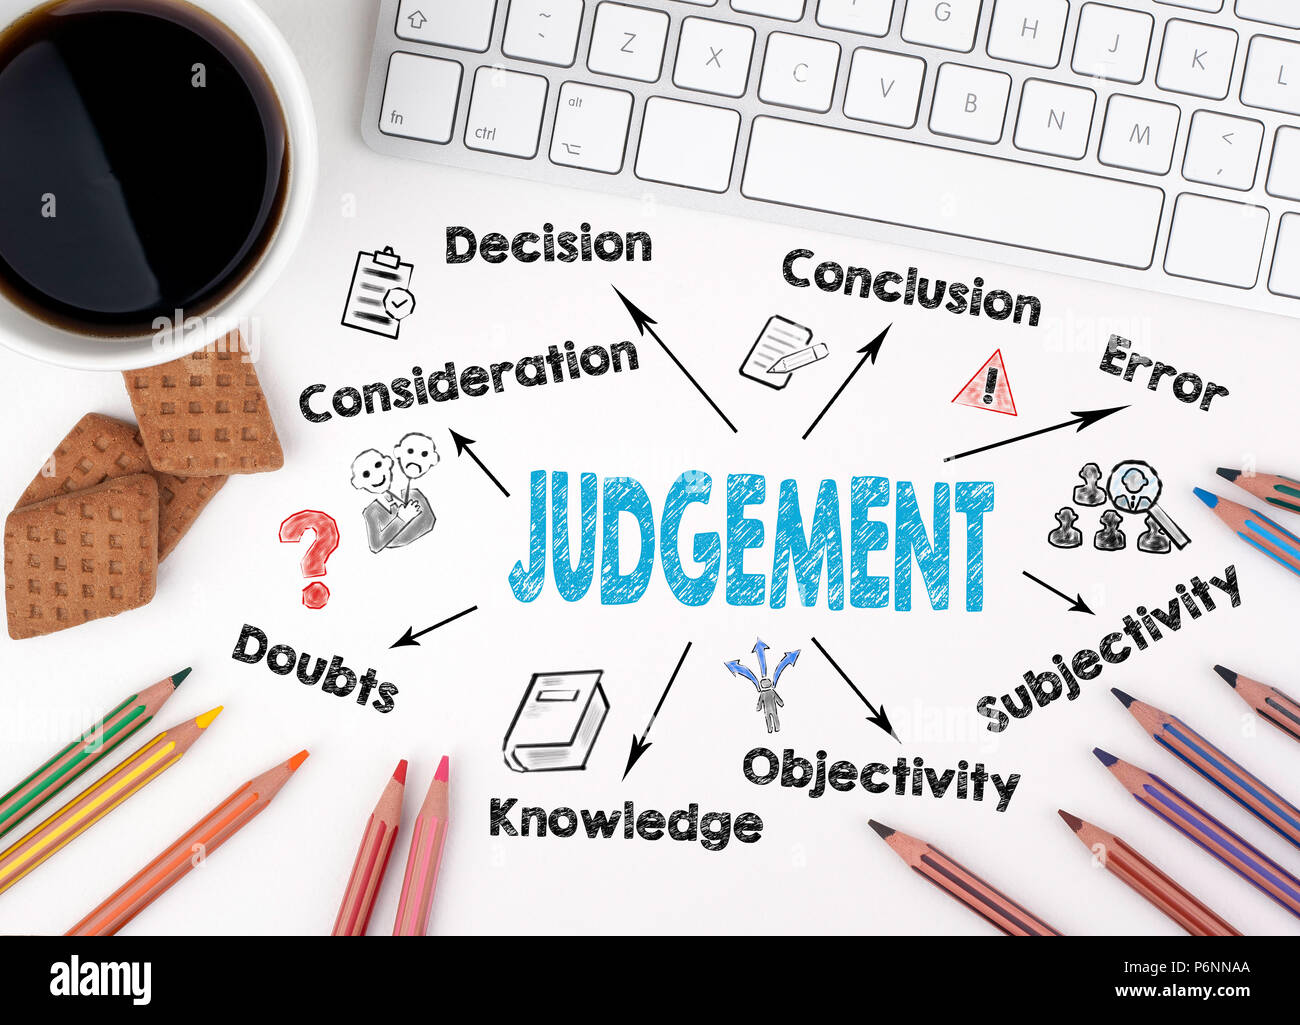 Judgement, Law and justice concept - Stock Image